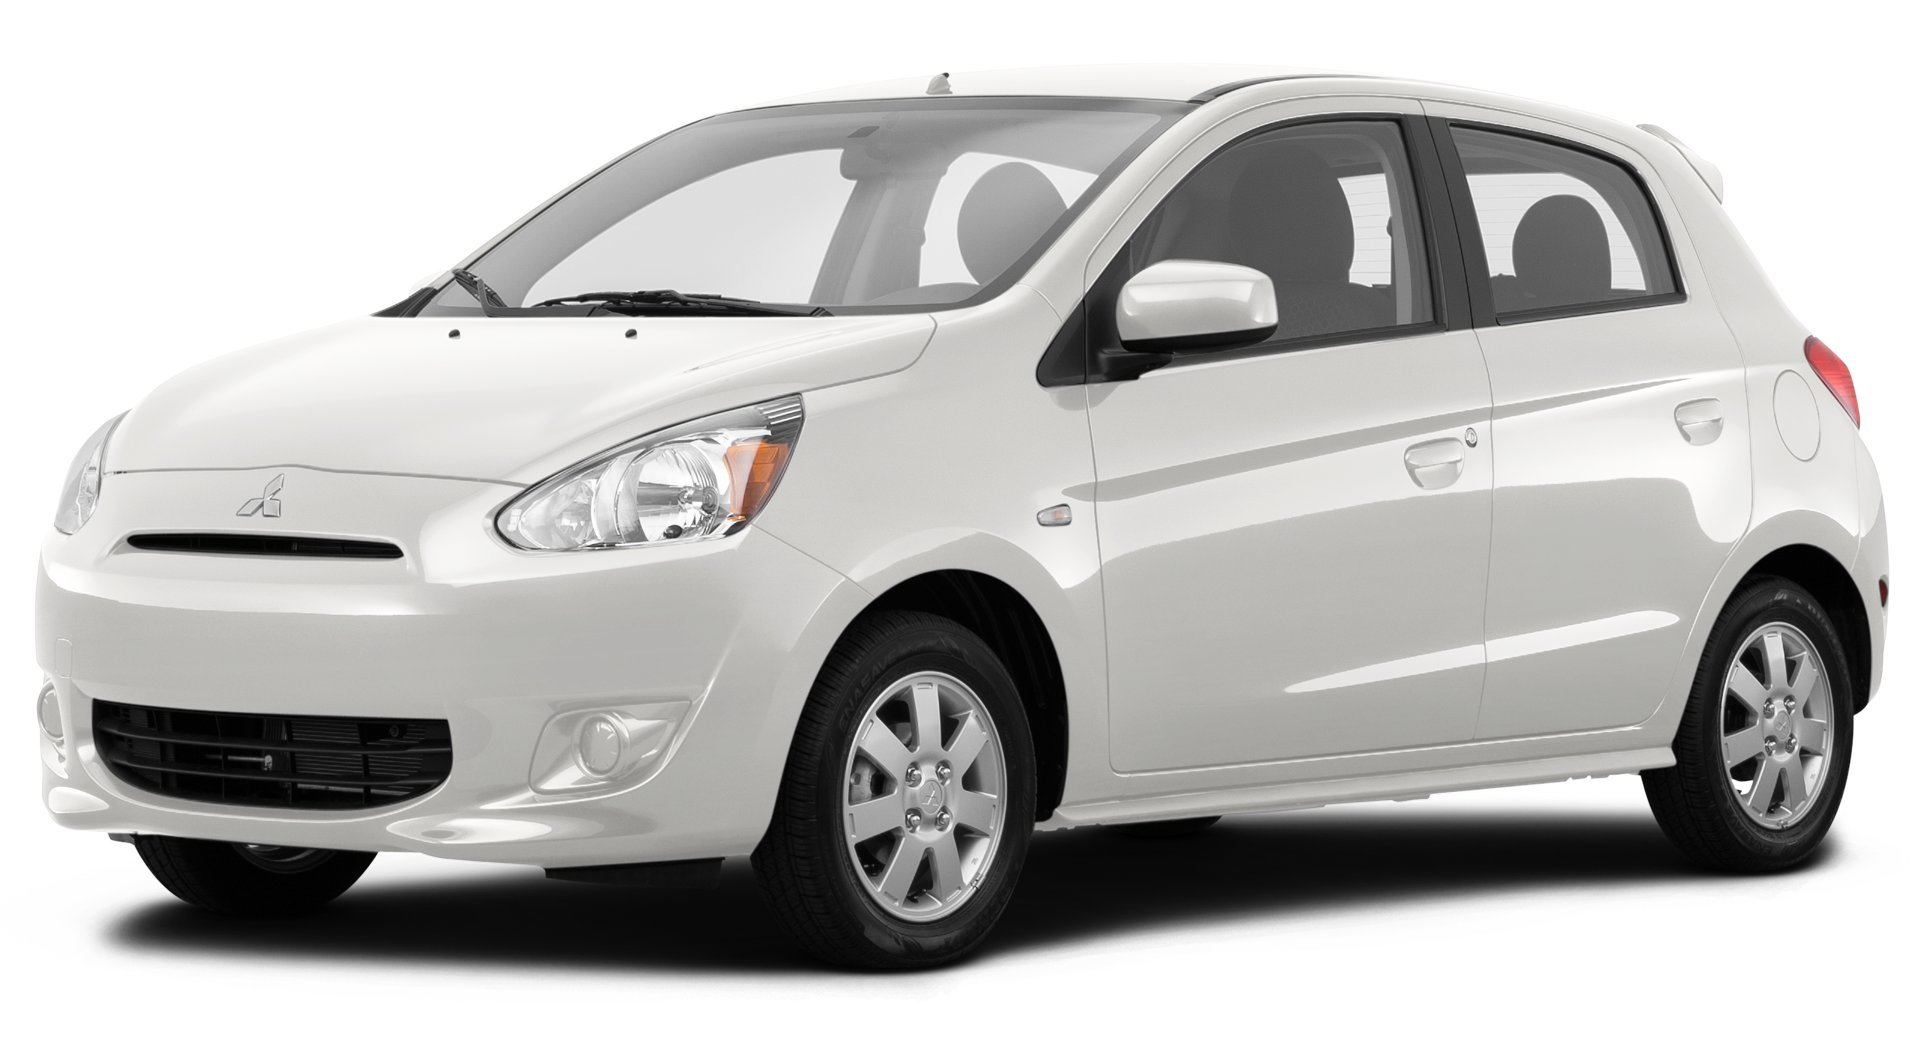 Amazon 2014 Mitsubishi Mirage Reviews and Specs Vehicles